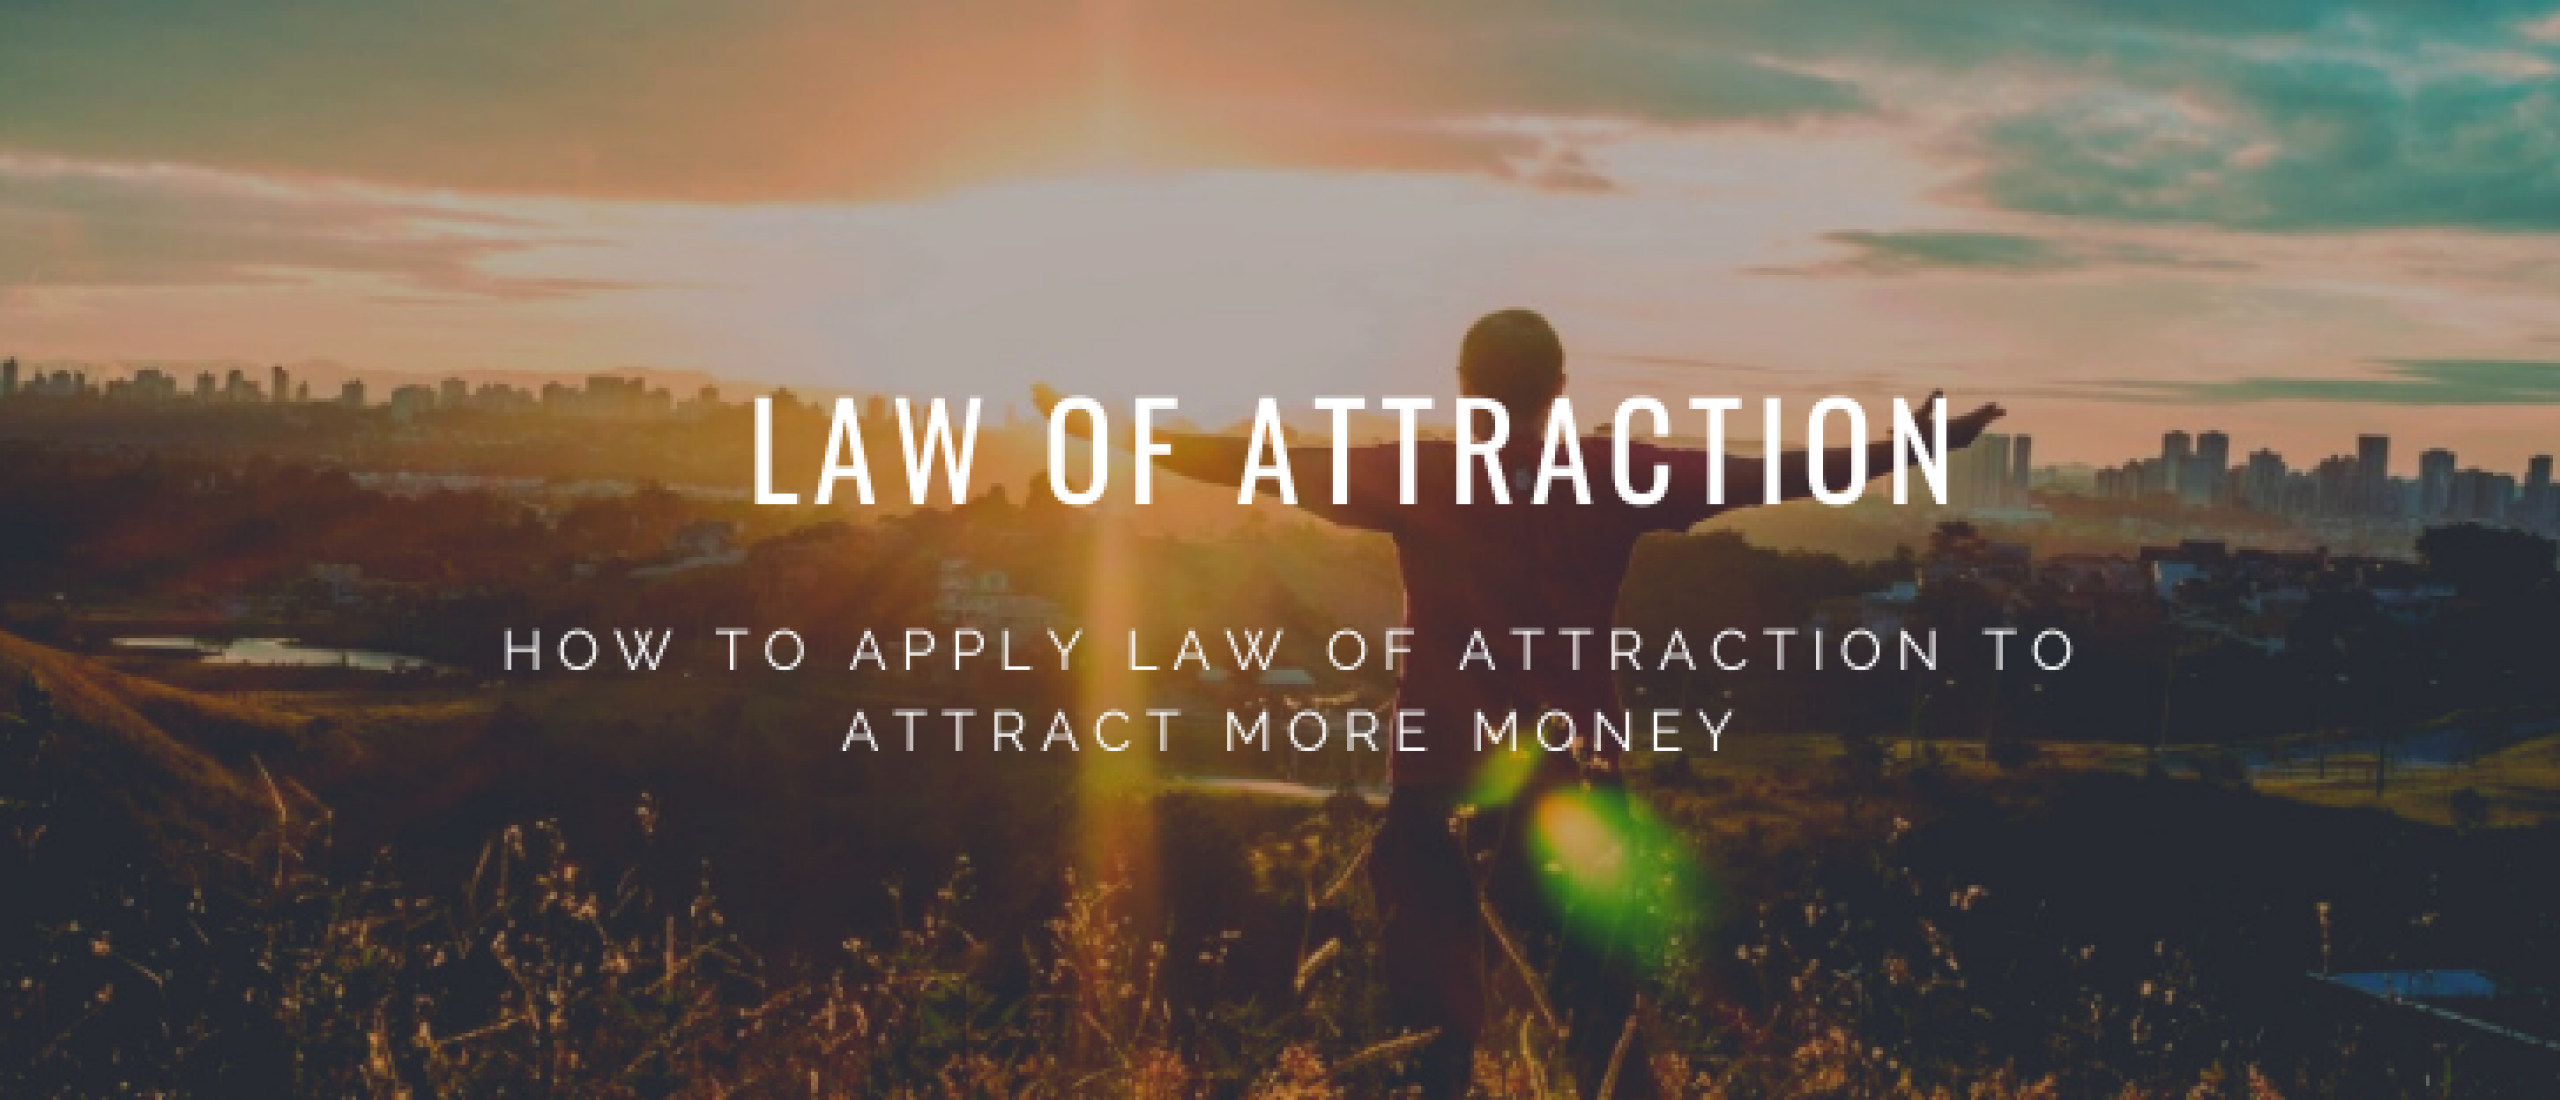 How to attract money using the law of attraction